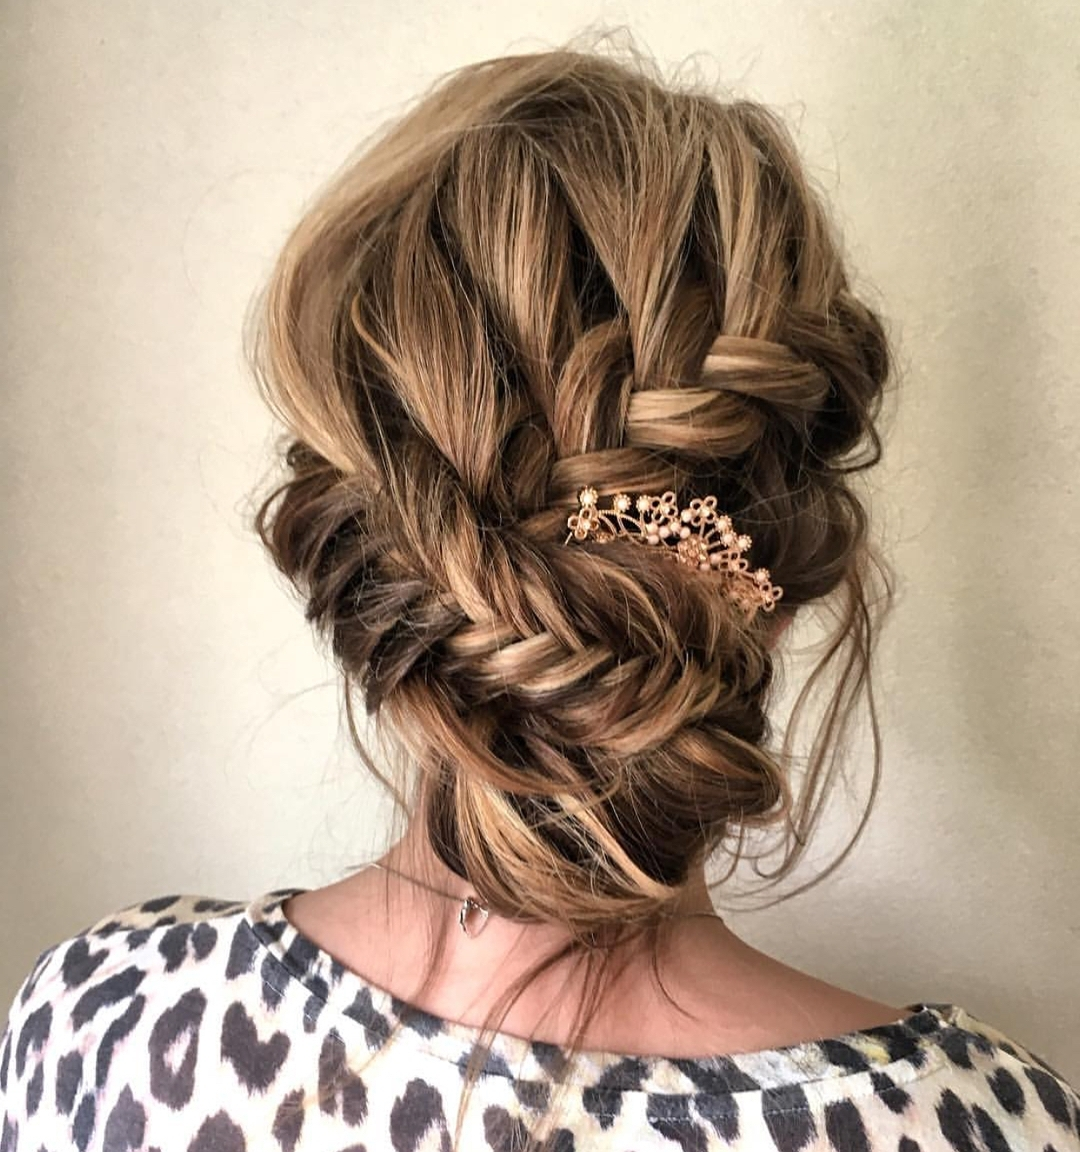 10 Updos For Medium Length Hair From Top Salon Stylists, 2018 Prom Updo Inside Casual Updos For Medium Length Hair (View 13 of 15)